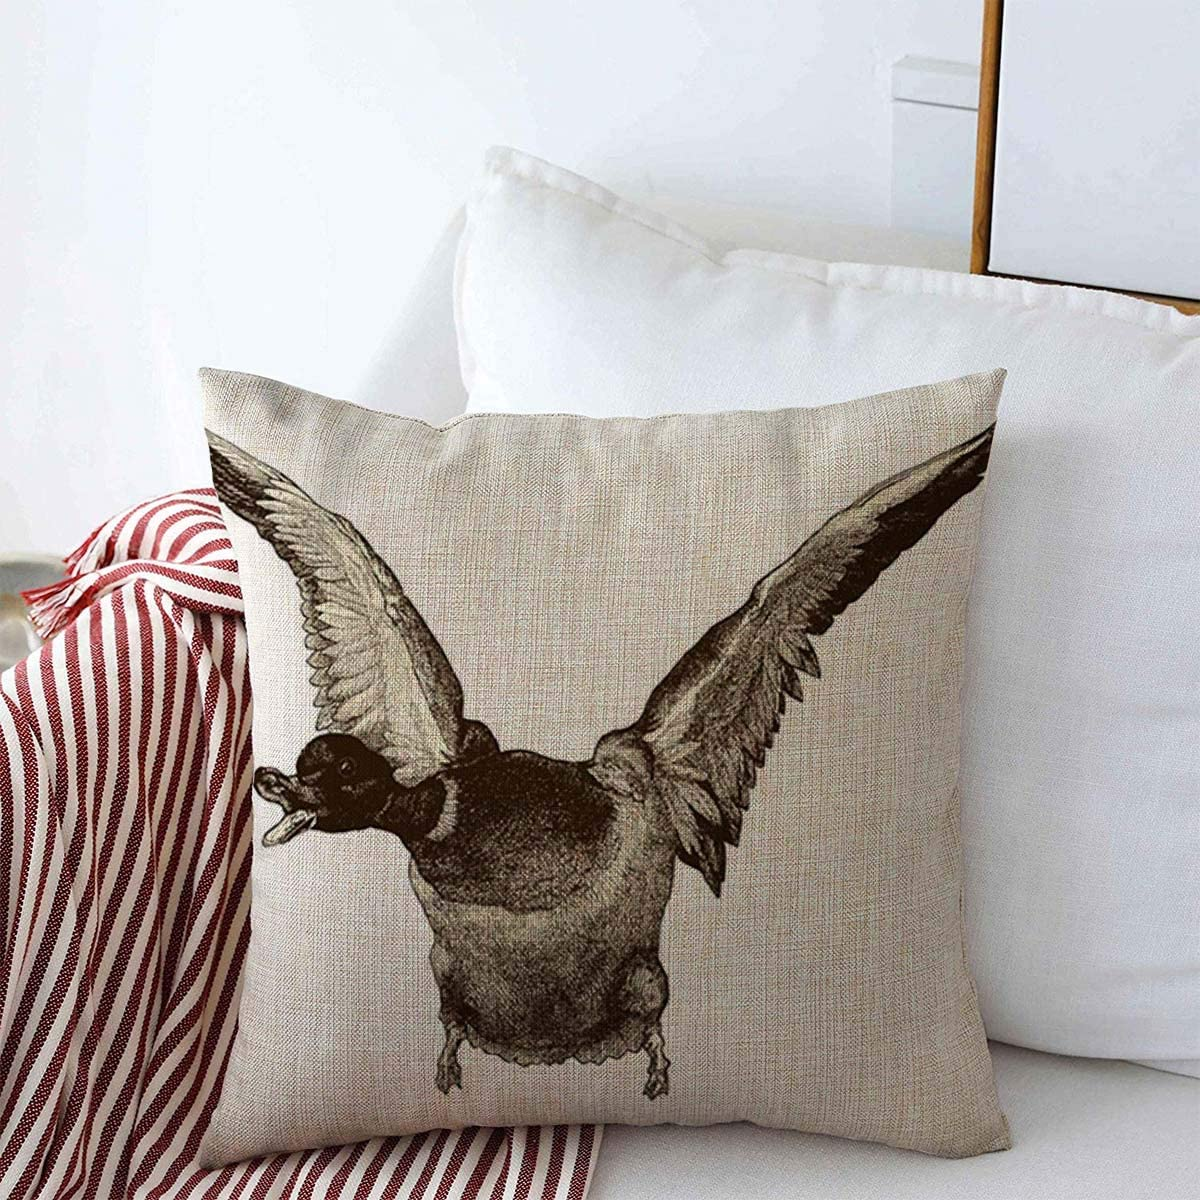 Amazon Com Staroutah Pillow Case Bird Drawing Flying Duck Vintage Engraved La Mosaique Edited By Bourdilliat Paris Wild Retro Farmhouse Decorative Throw Pillows Covers 18 X18 For Couch Decorations Home Kitchen